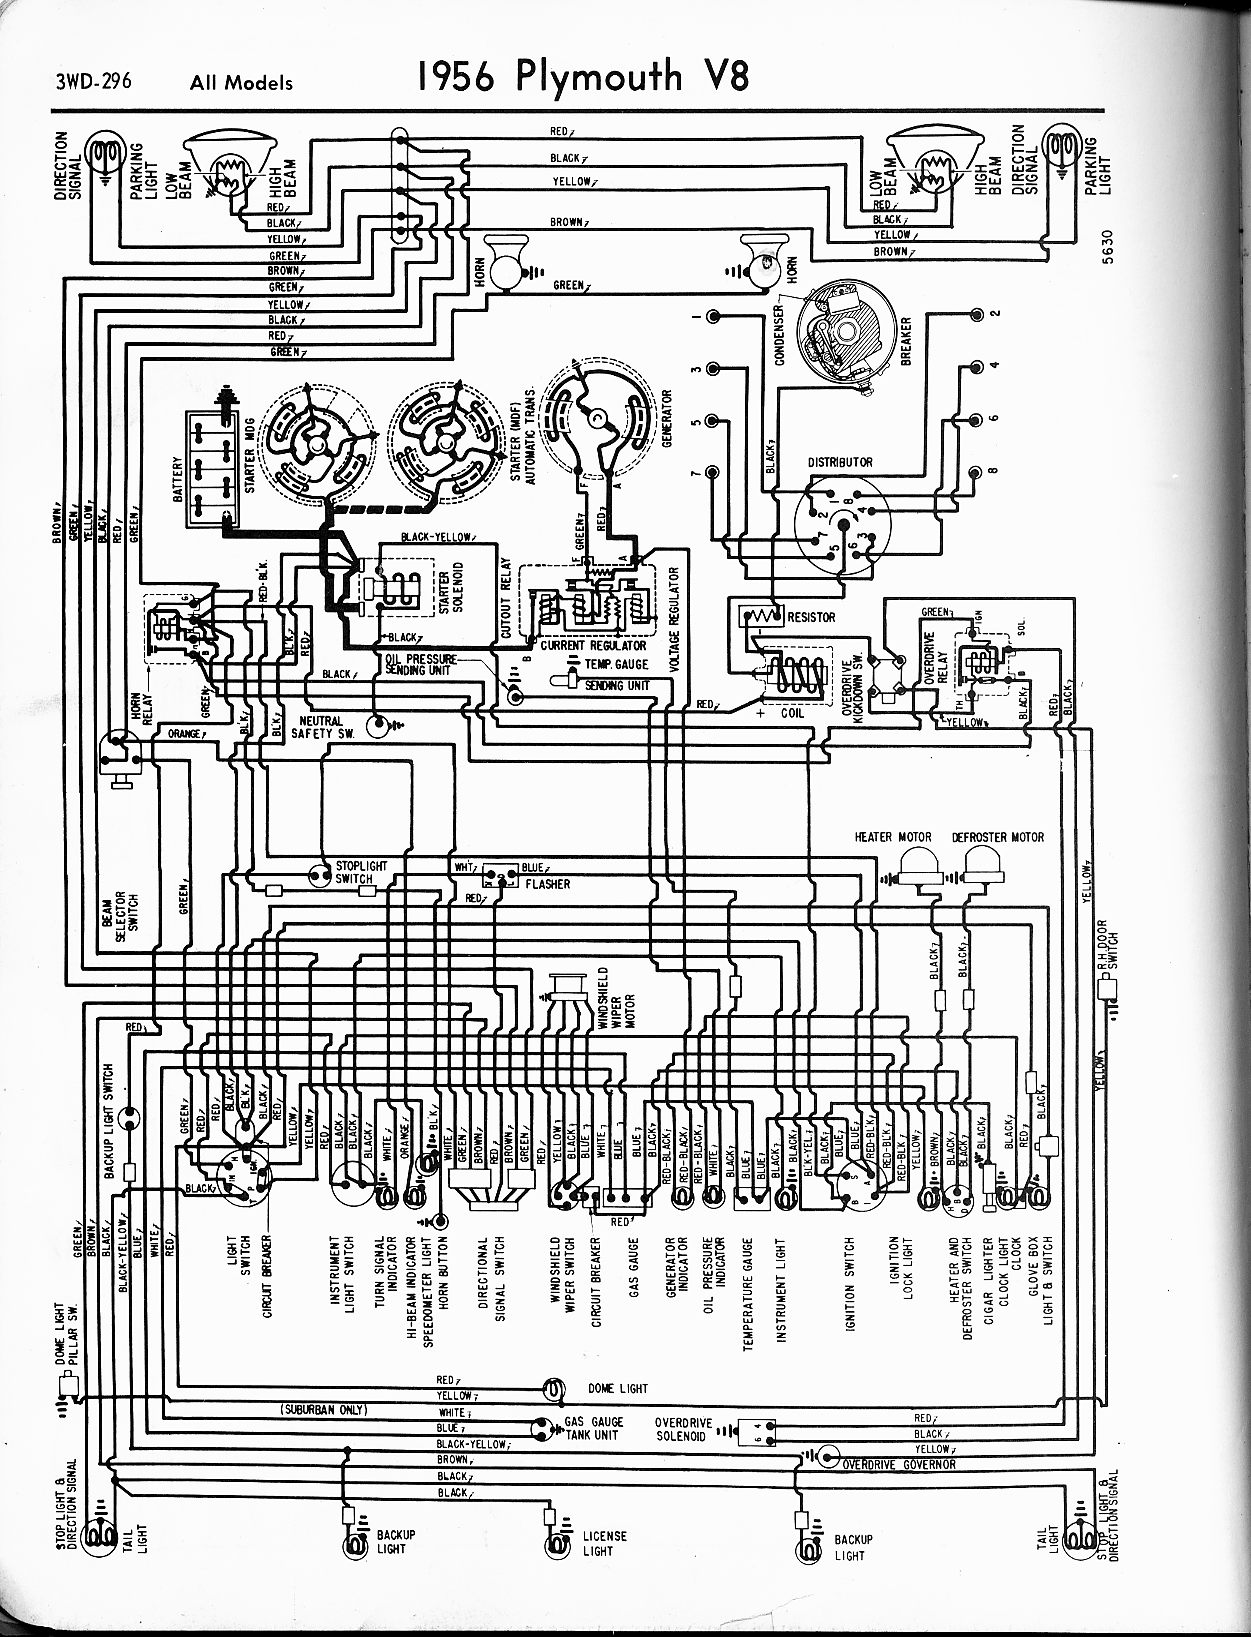 hight resolution of plymouth electrical wiring diagrams wiring diagrams valueplymouth wiring schematics wiring diagram list plymouth electrical wiring diagrams